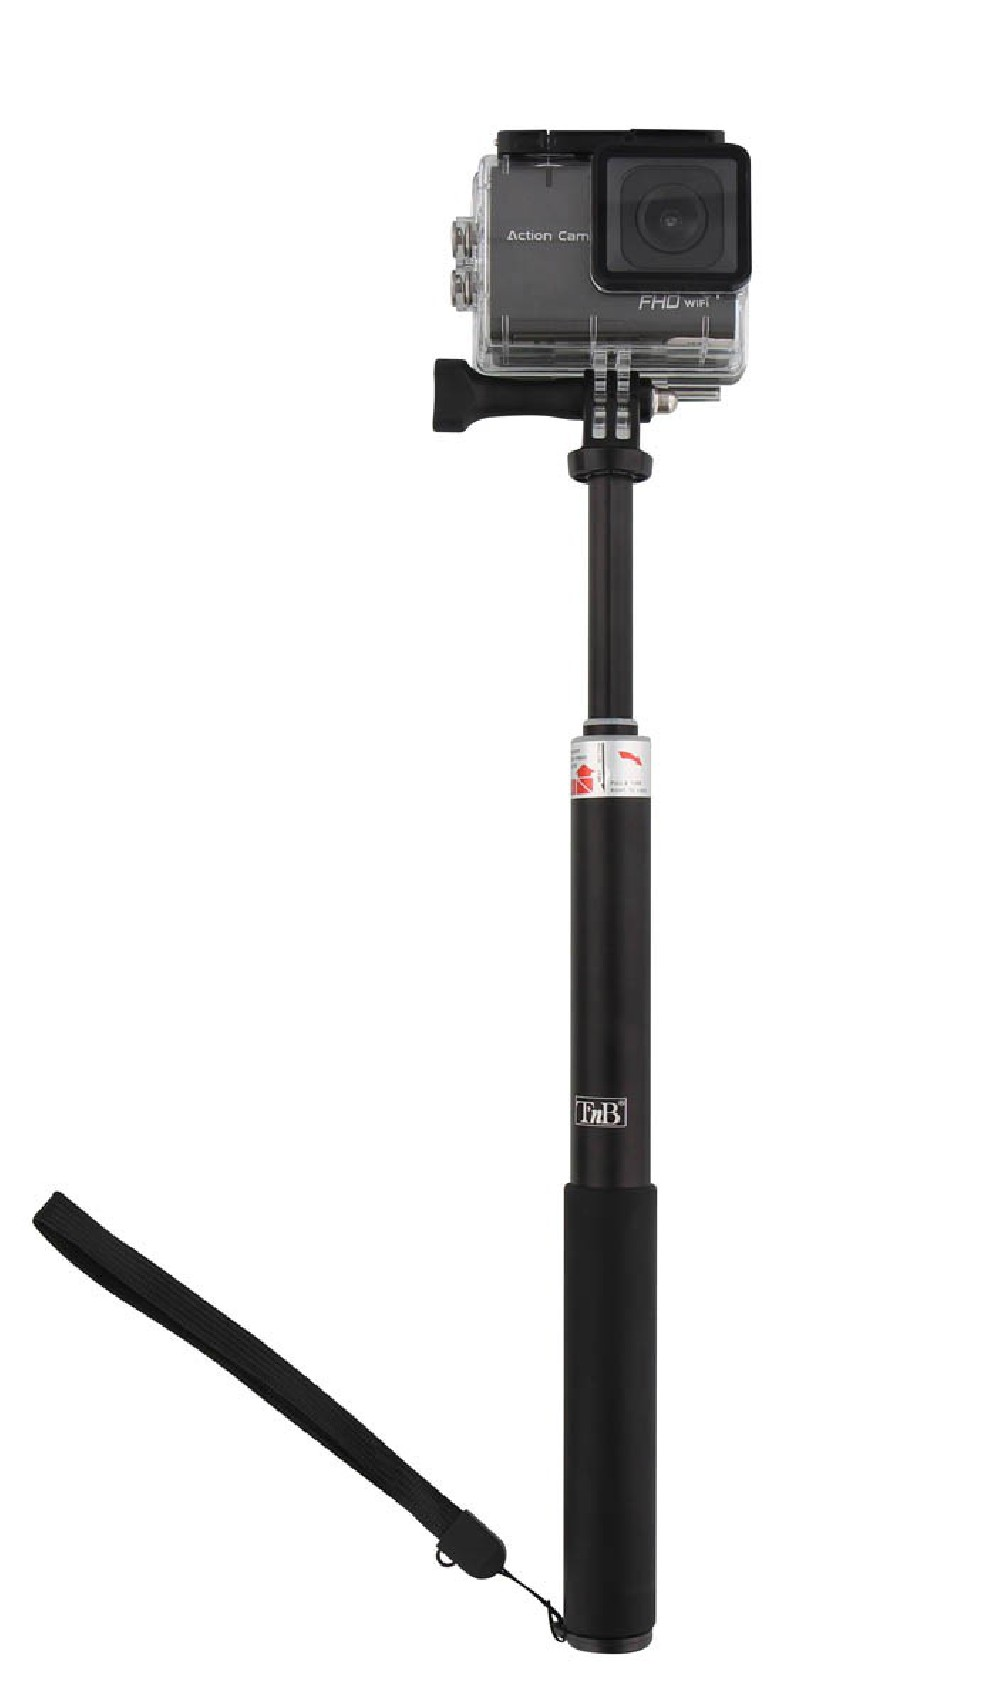 BLACK MONOPOD FOR CAMERA